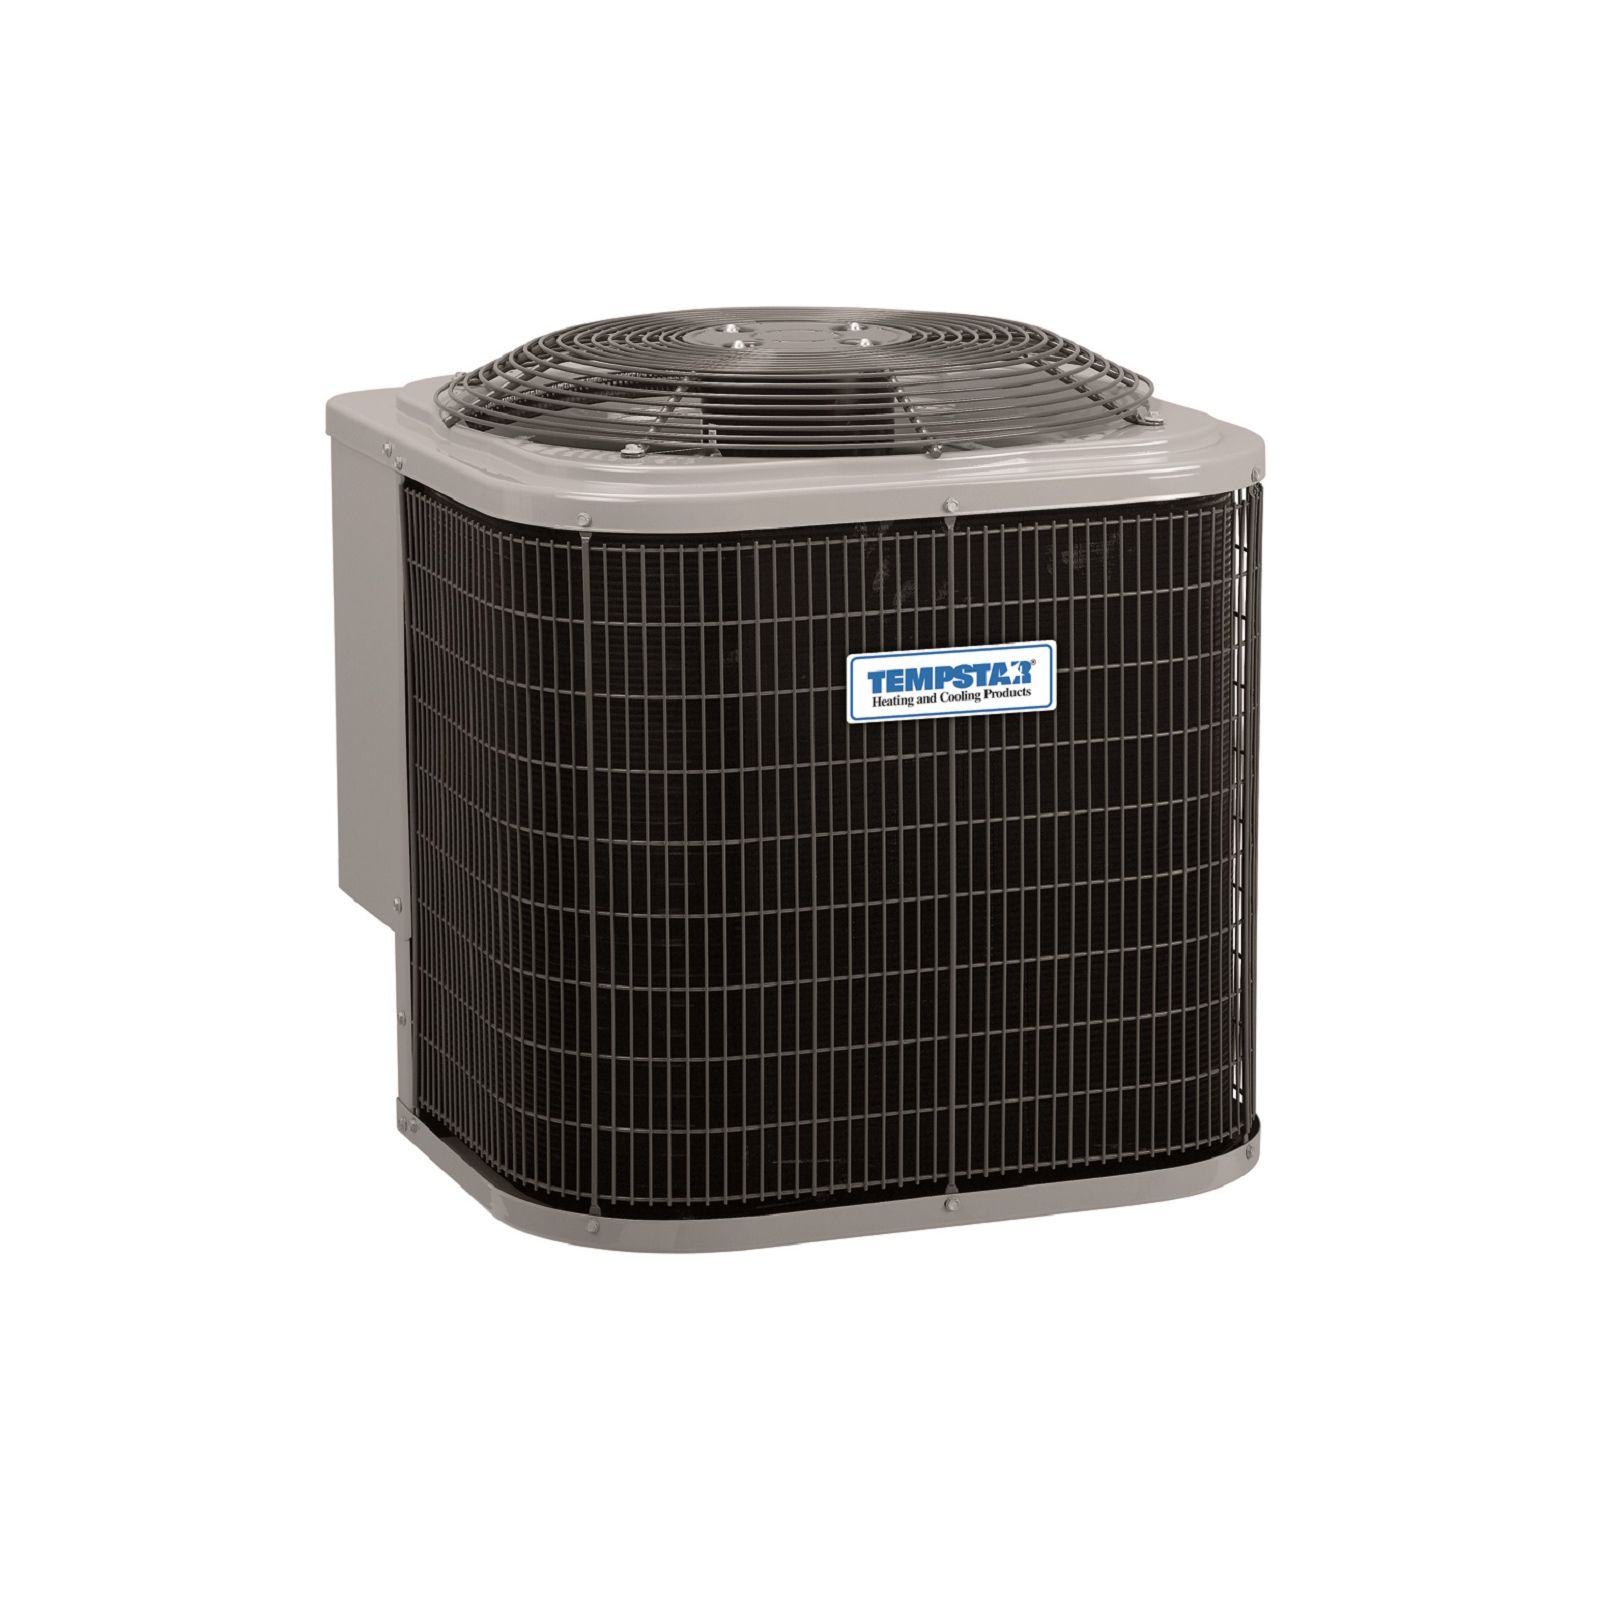 "Tempstar N4H442GKG - Performance Series 3 1/2 Ton, 14 SEER, R410A Heat Pump, Coil Guard Grille 3/8"" Spacing, 208-230/1/60"